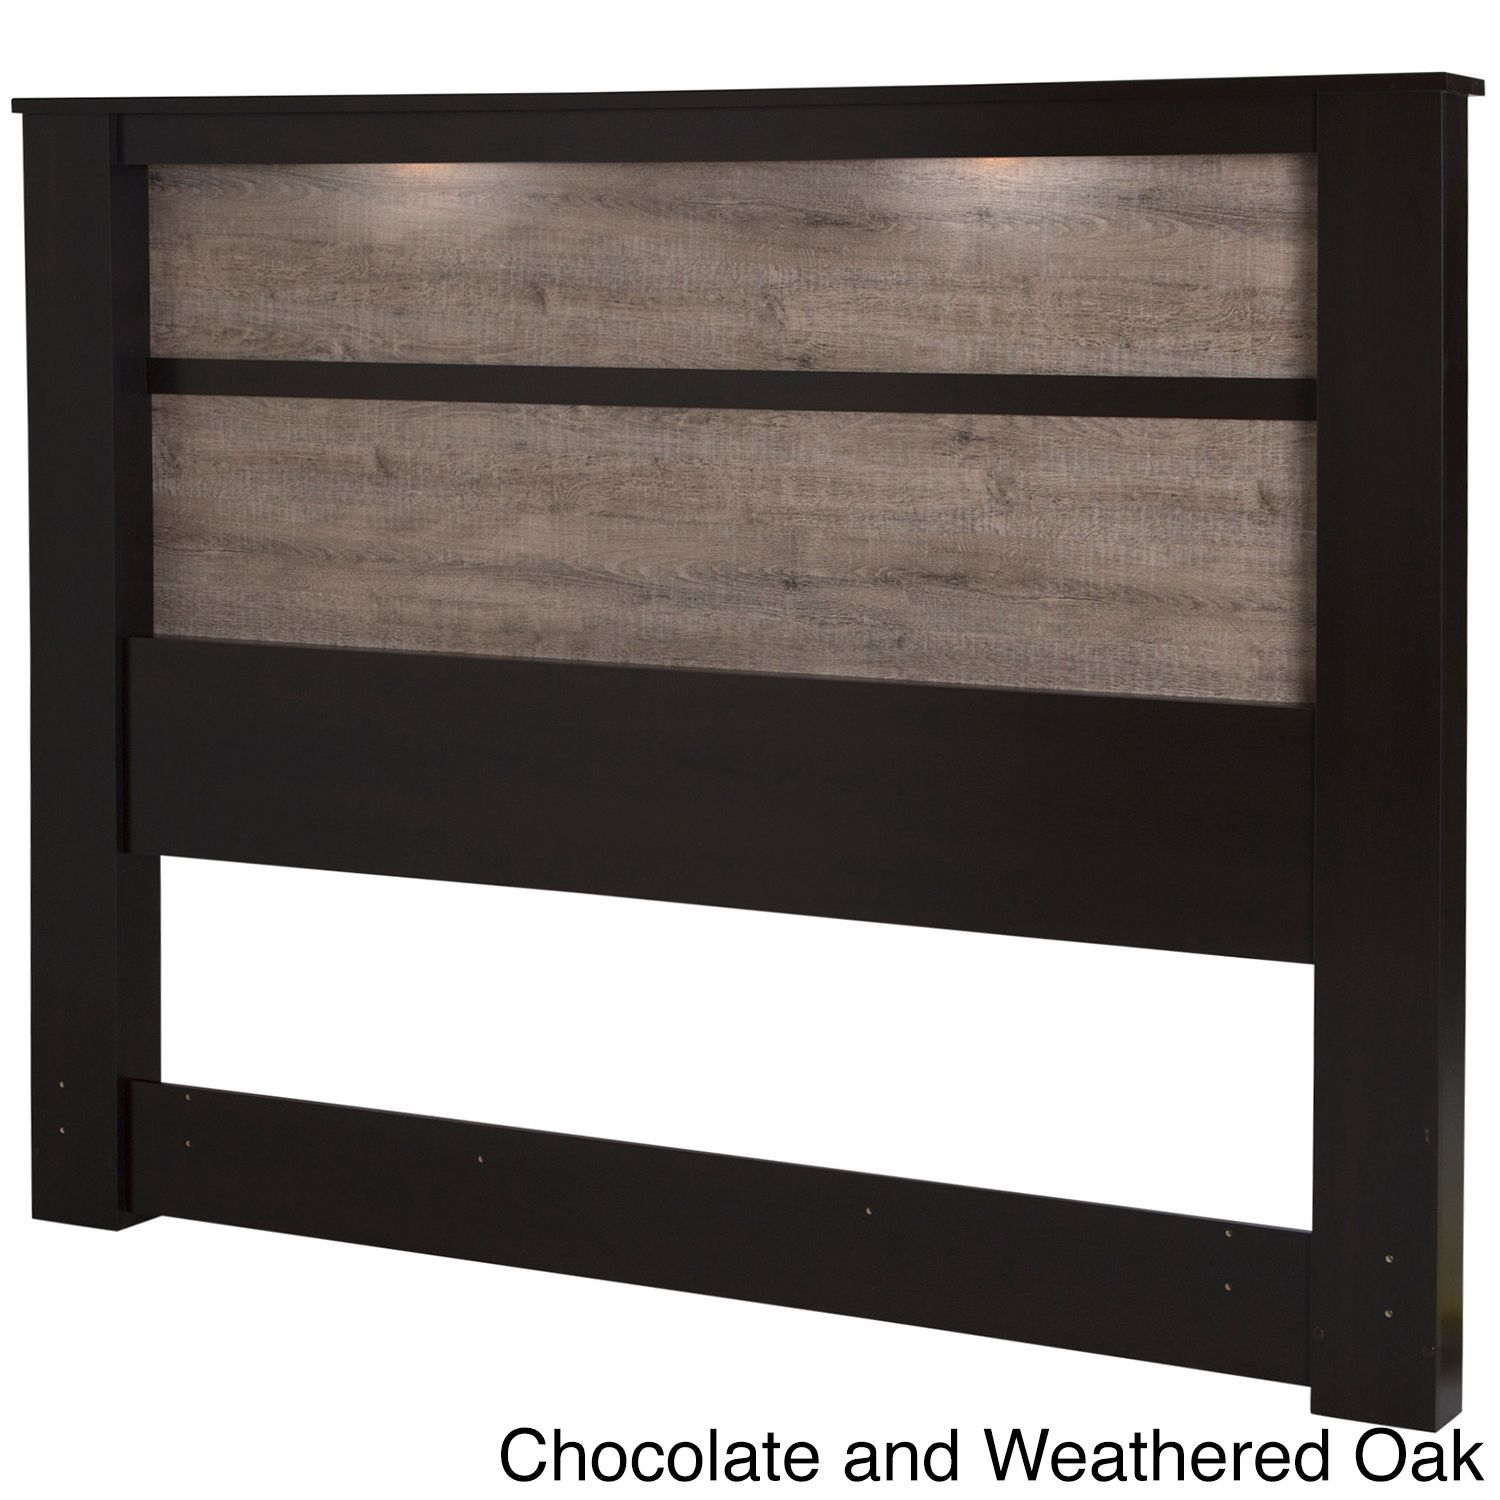 King size wood headboard Black Kingsize Wooden Headboard With Inset Lights chocolate And Weathered Oak Brown Pinterest Kingsize Wooden Headboard With Inset Lights chocolate And